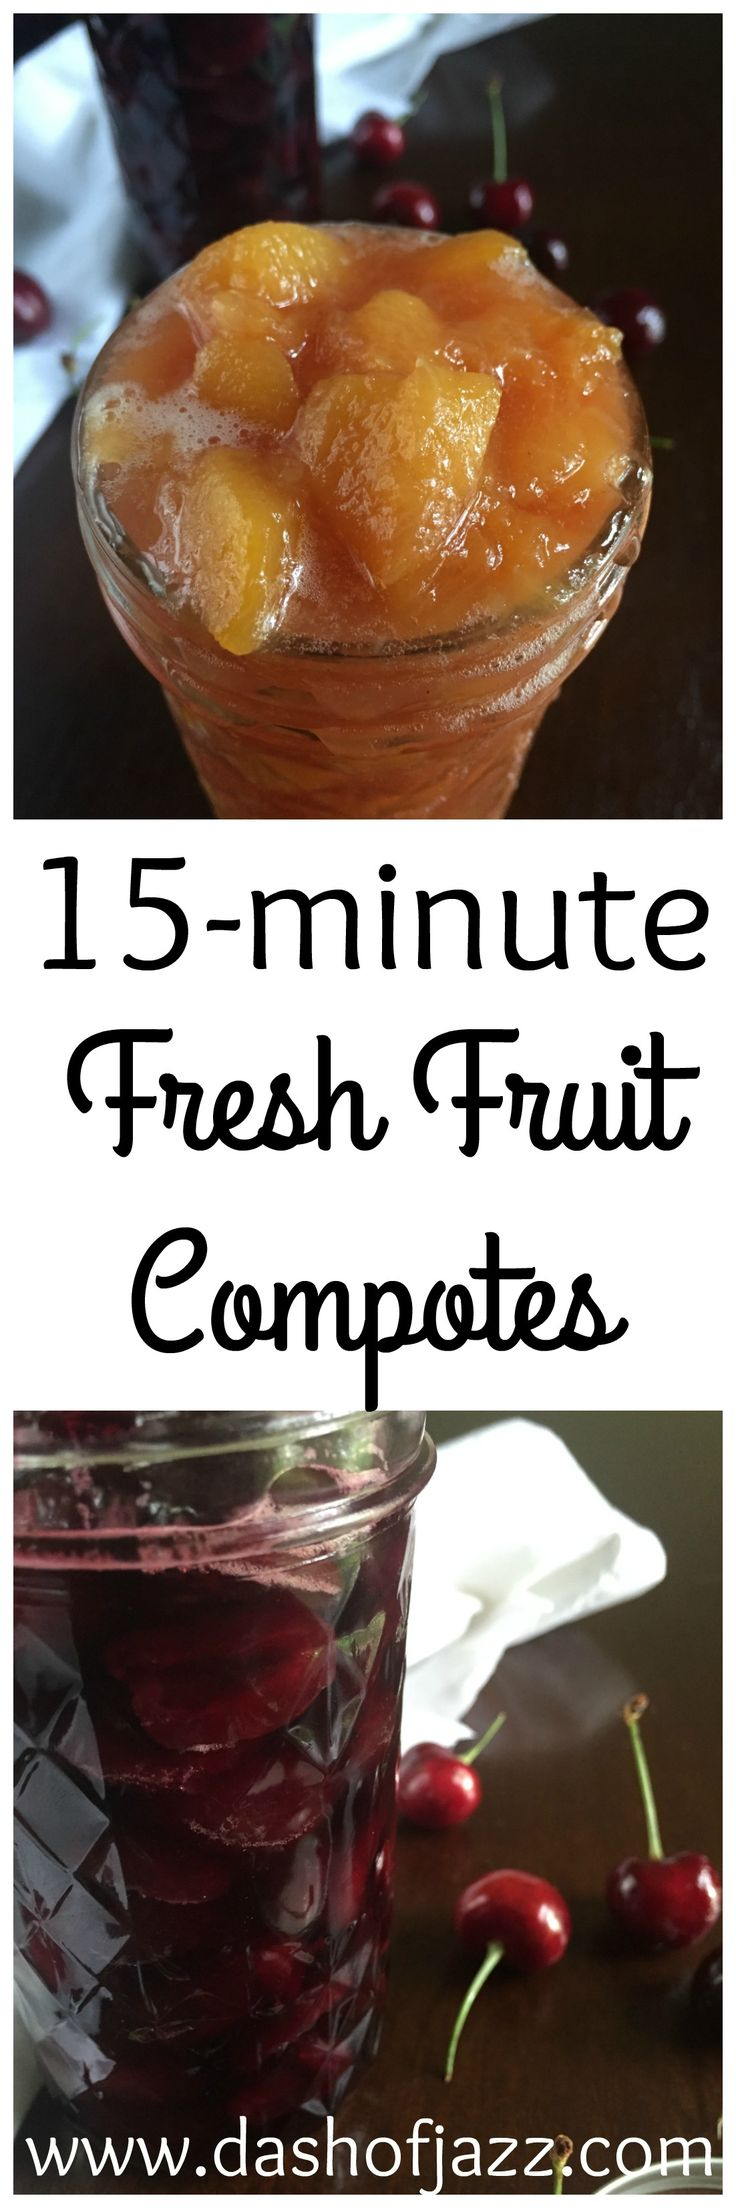 3 fresh fruit compote recipes for topping anything from ice cream to pancakes! These come together in just 15 minutes.